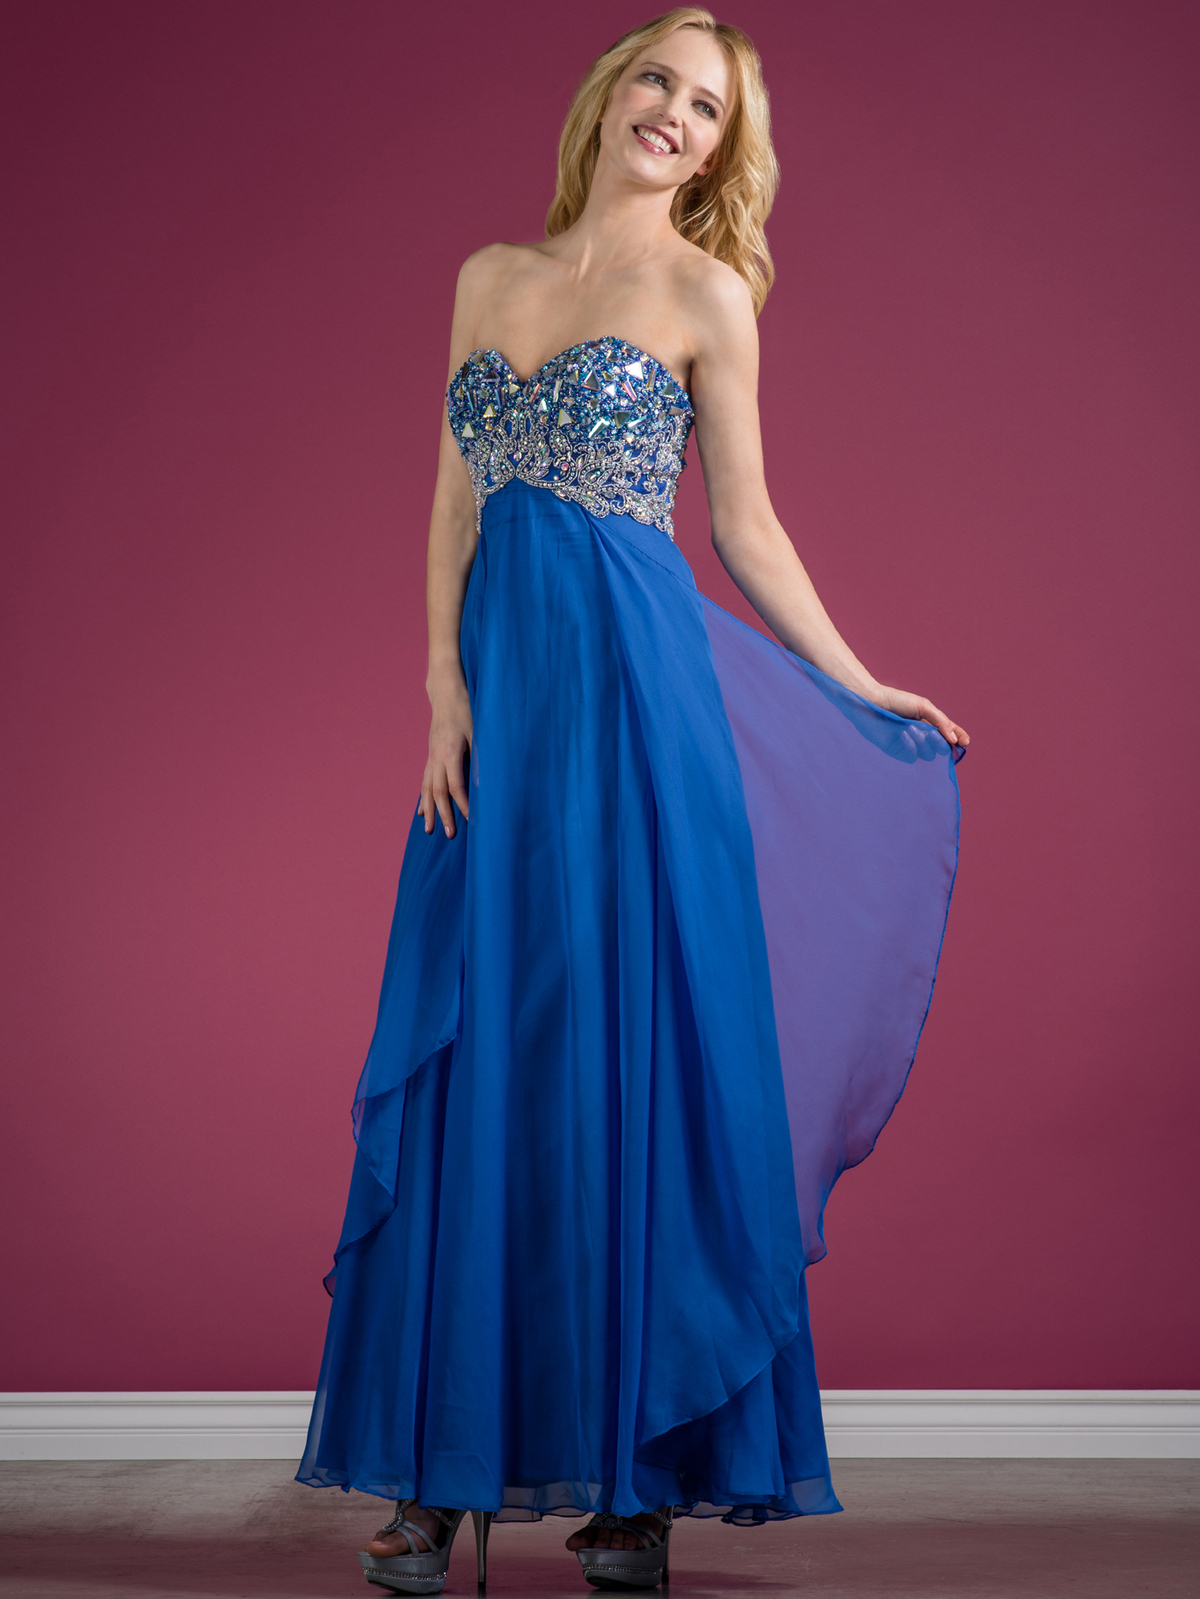 Jeweled and Beaded Sweetheart Prom Dress | Sung Boutique L.A.